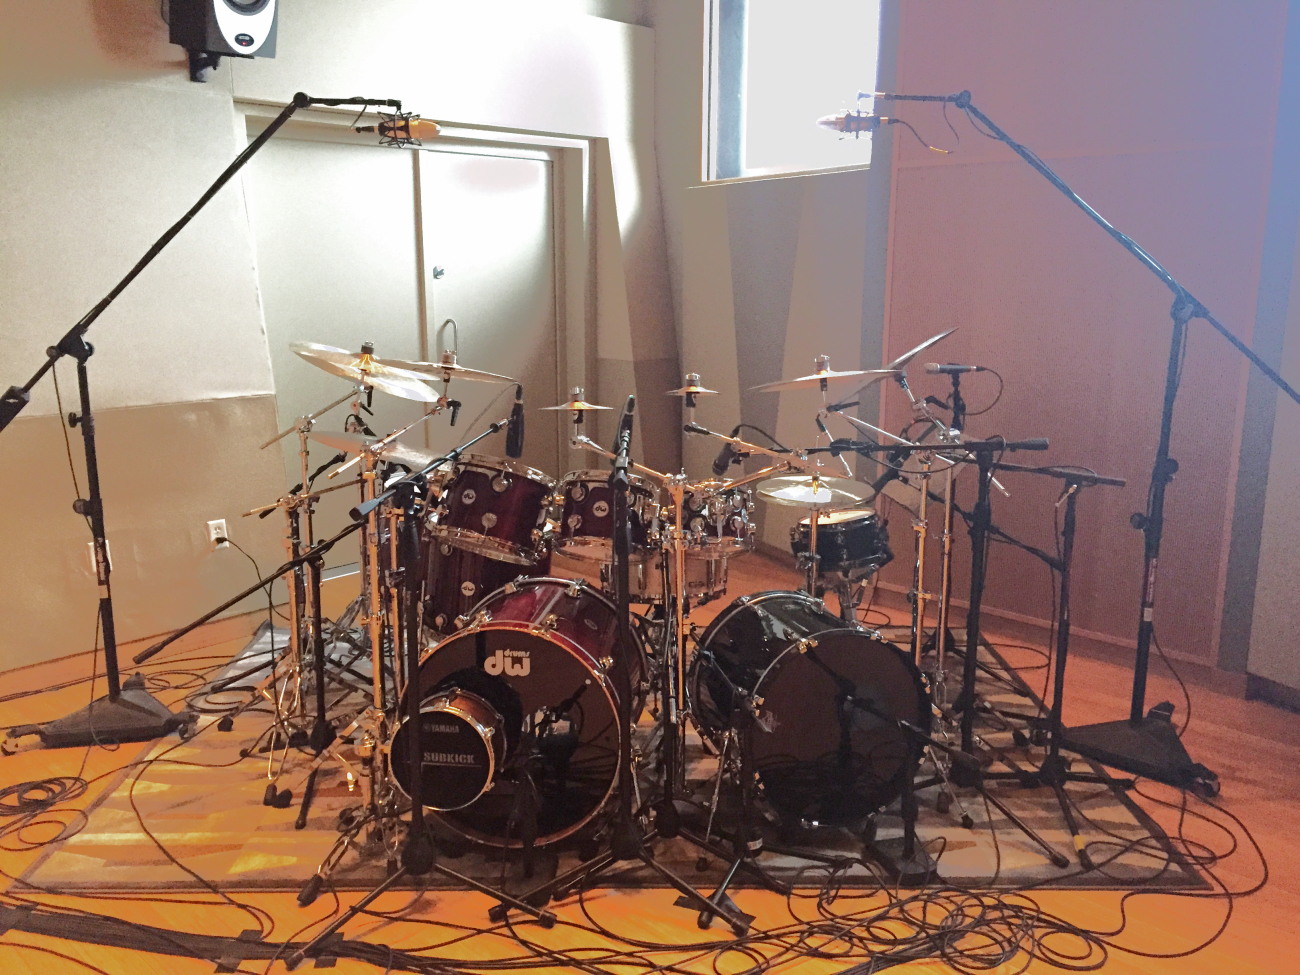 Miking A Drum Kit : how to mic drums for recording part 3 multiple microphones ~ Russianpoet.info Haus und Dekorationen